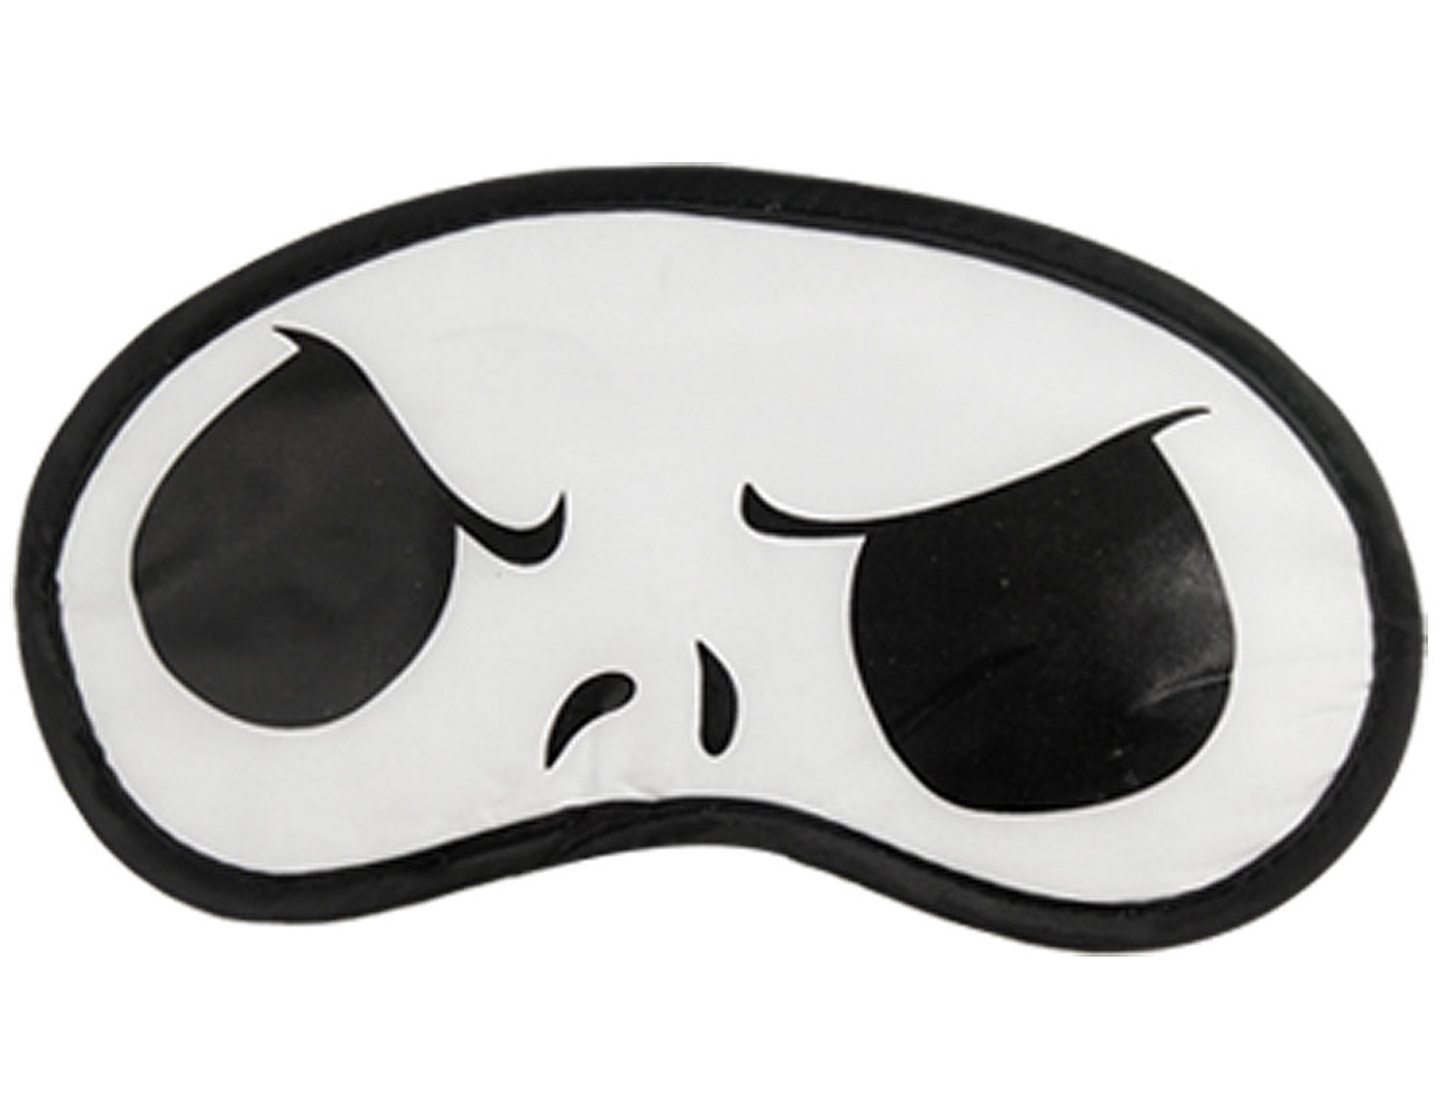 2 Pcs Elastic Strap Cartoon Panda Pattern Eye Mask Eyeshade